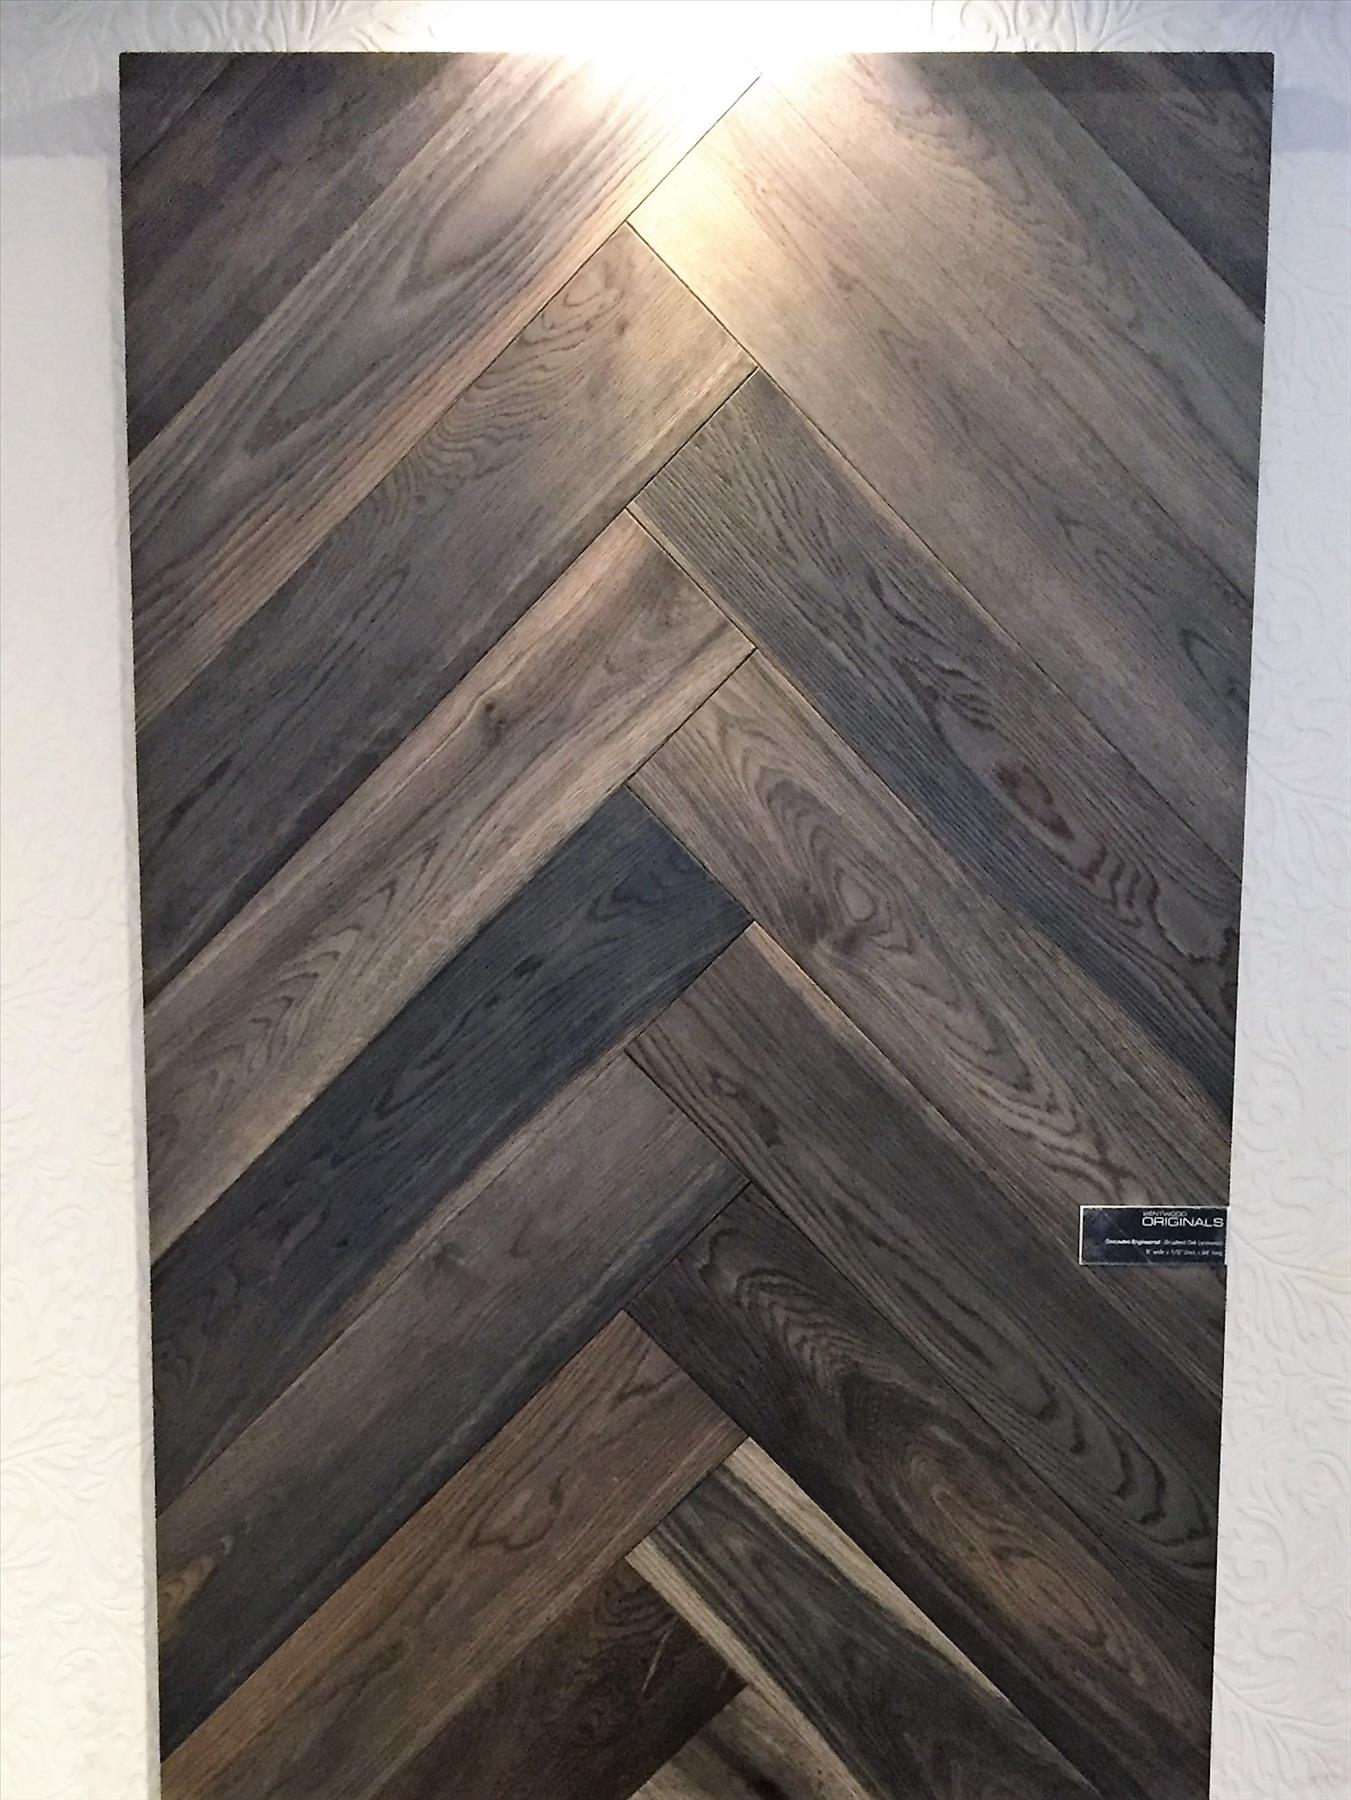 Exciting new Hardwood Flooring Products at Toronto Flooring Solutions